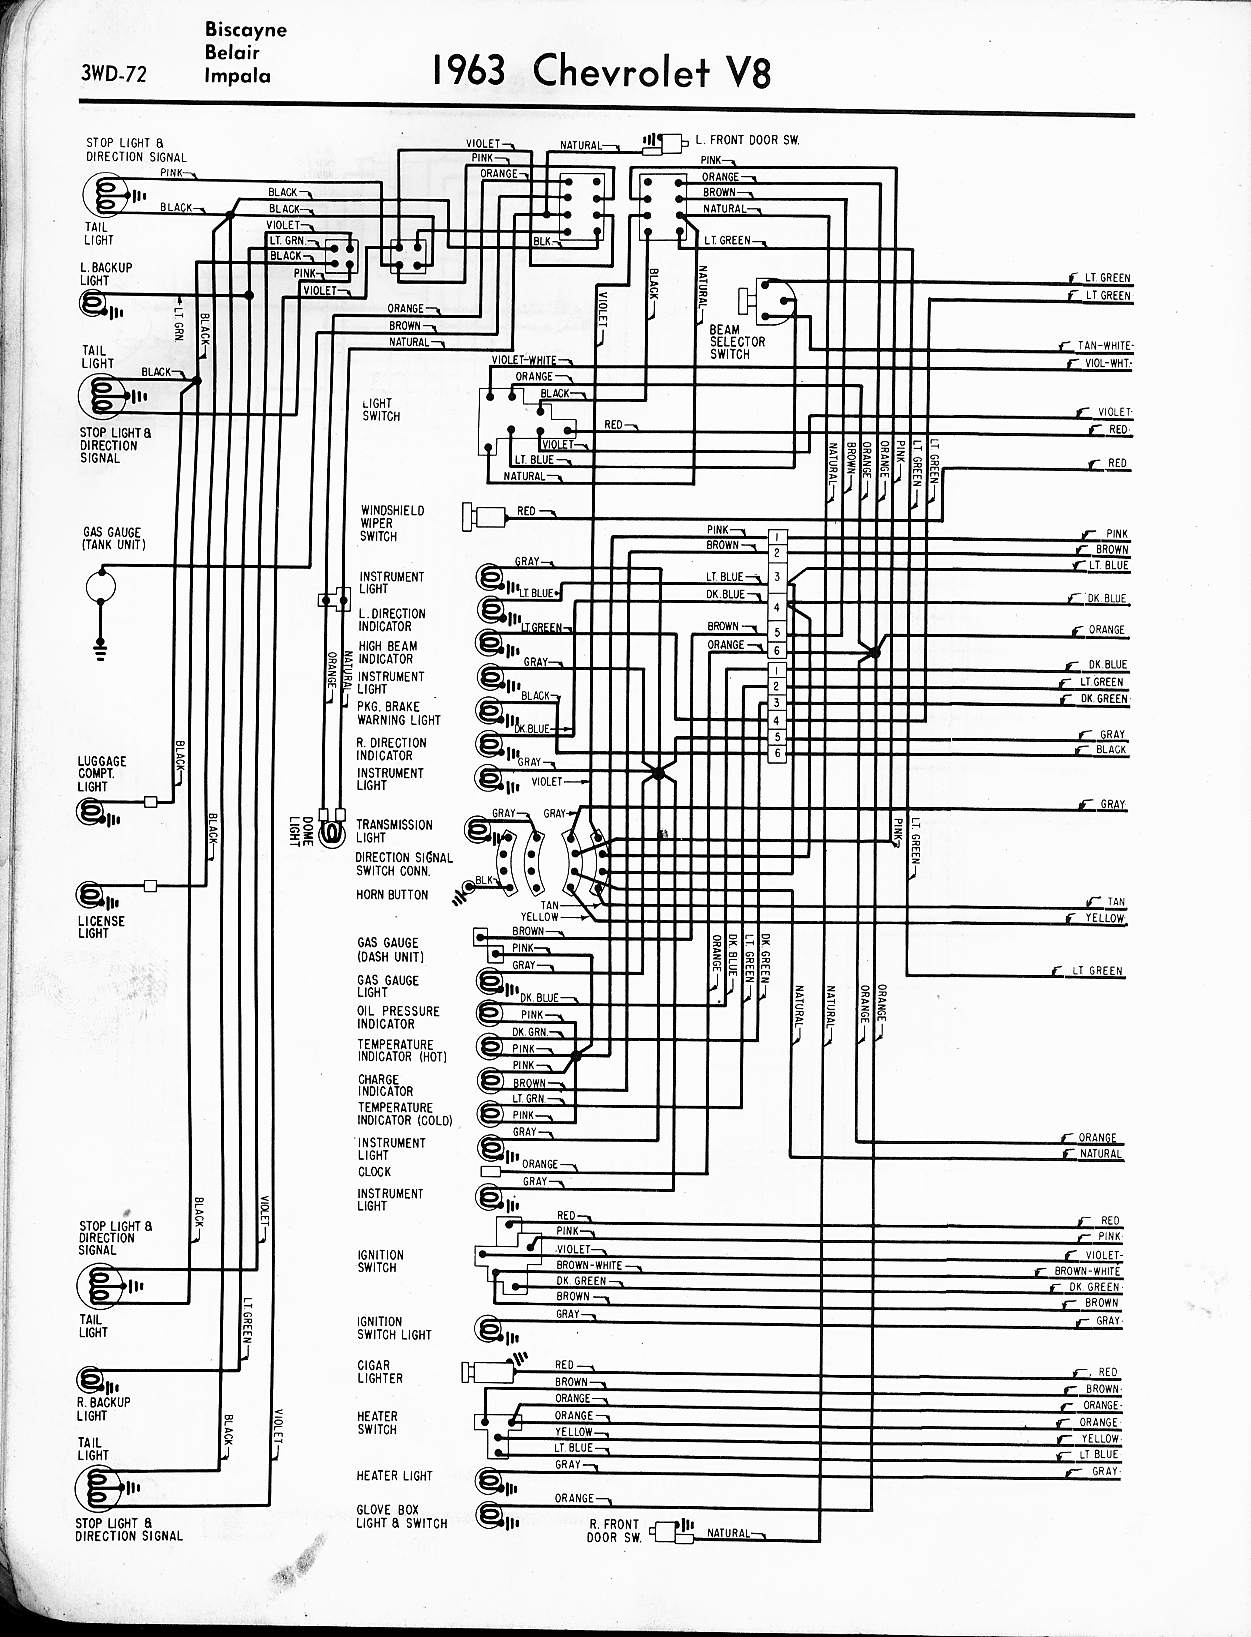 hight resolution of 1963 chevrolet wiring schematics wiring diagram meta 1963 chevy wiring diagram wiring diagram 1963 chevrolet impala